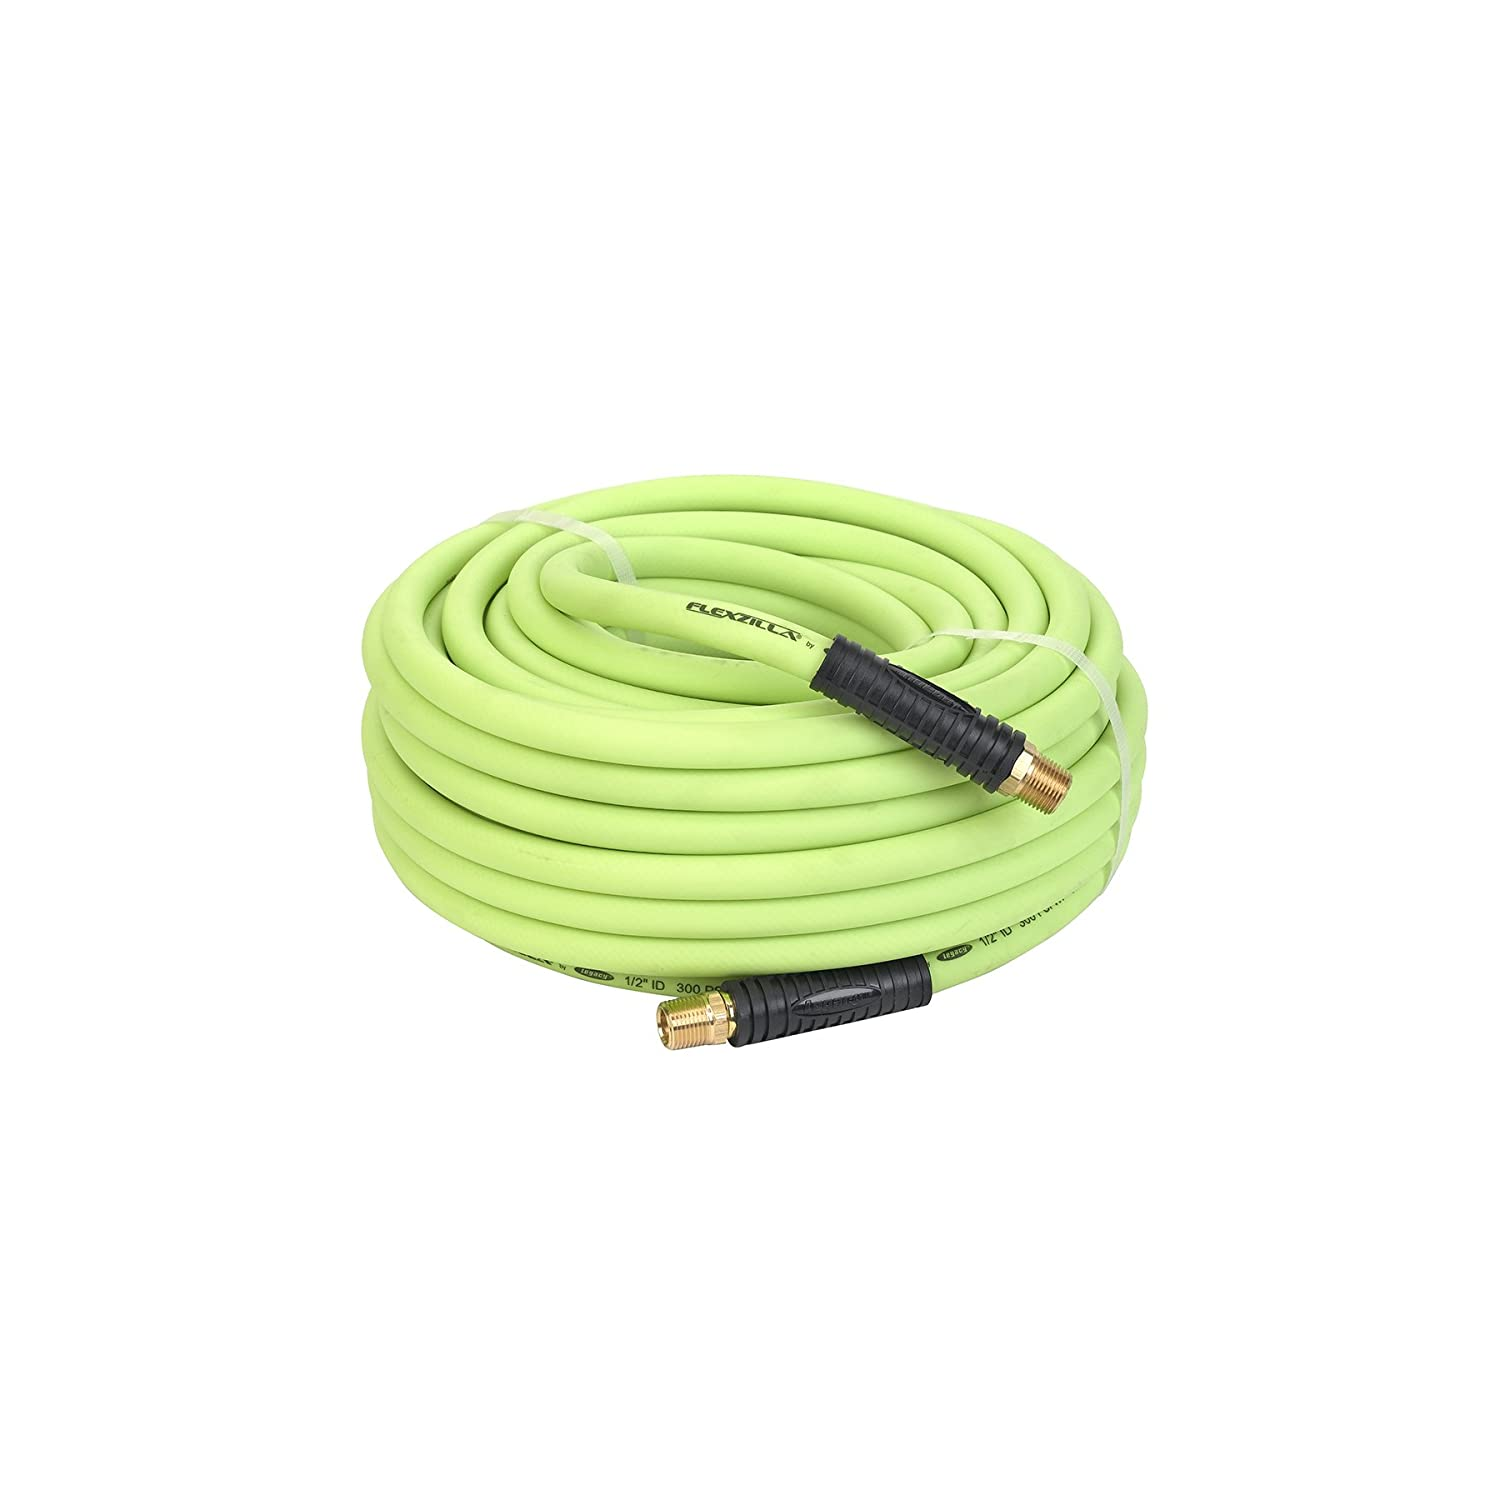 Flexzilla Air Hose, 1/2 In. X 100 Ft., 1/2 In. MNPT Fittings, Heavy Duty,  Lightweight, Hybrid, ZillaGreen   HFZ12100YW4   Automotive Car Care Tools  And ...